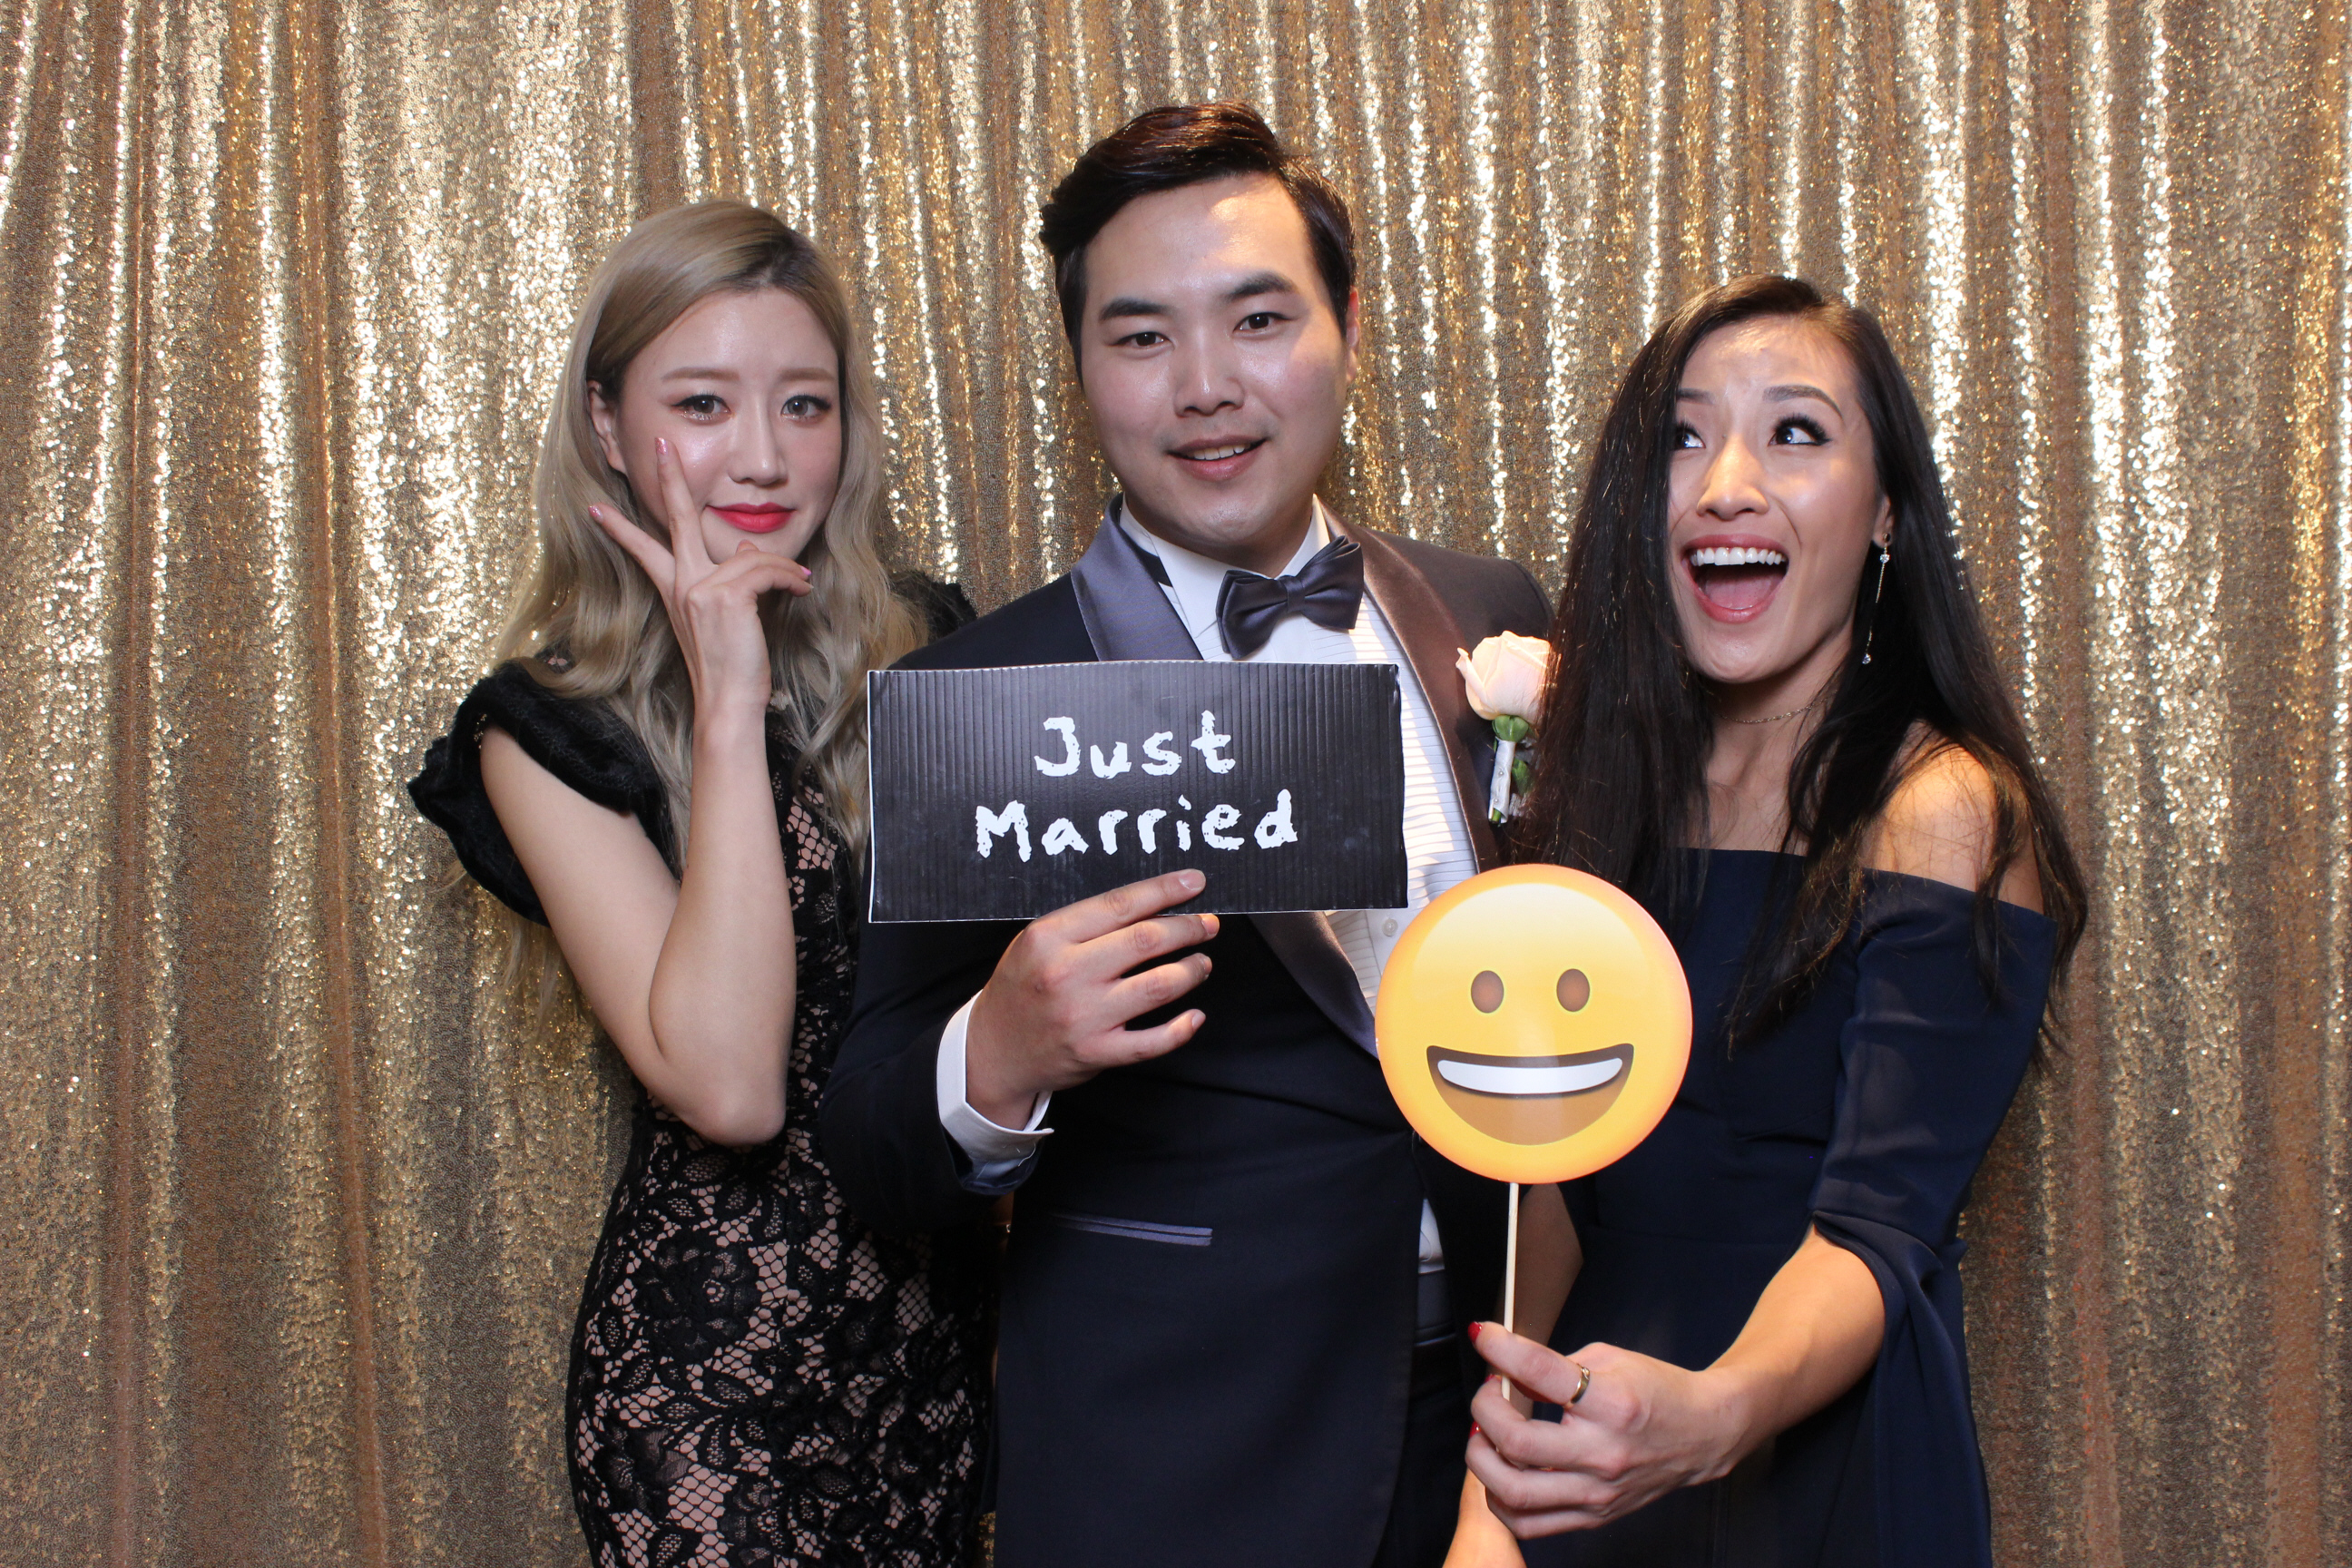 Wedding Photo Booth | Party photo booth backdrop | Photo booth Sydney